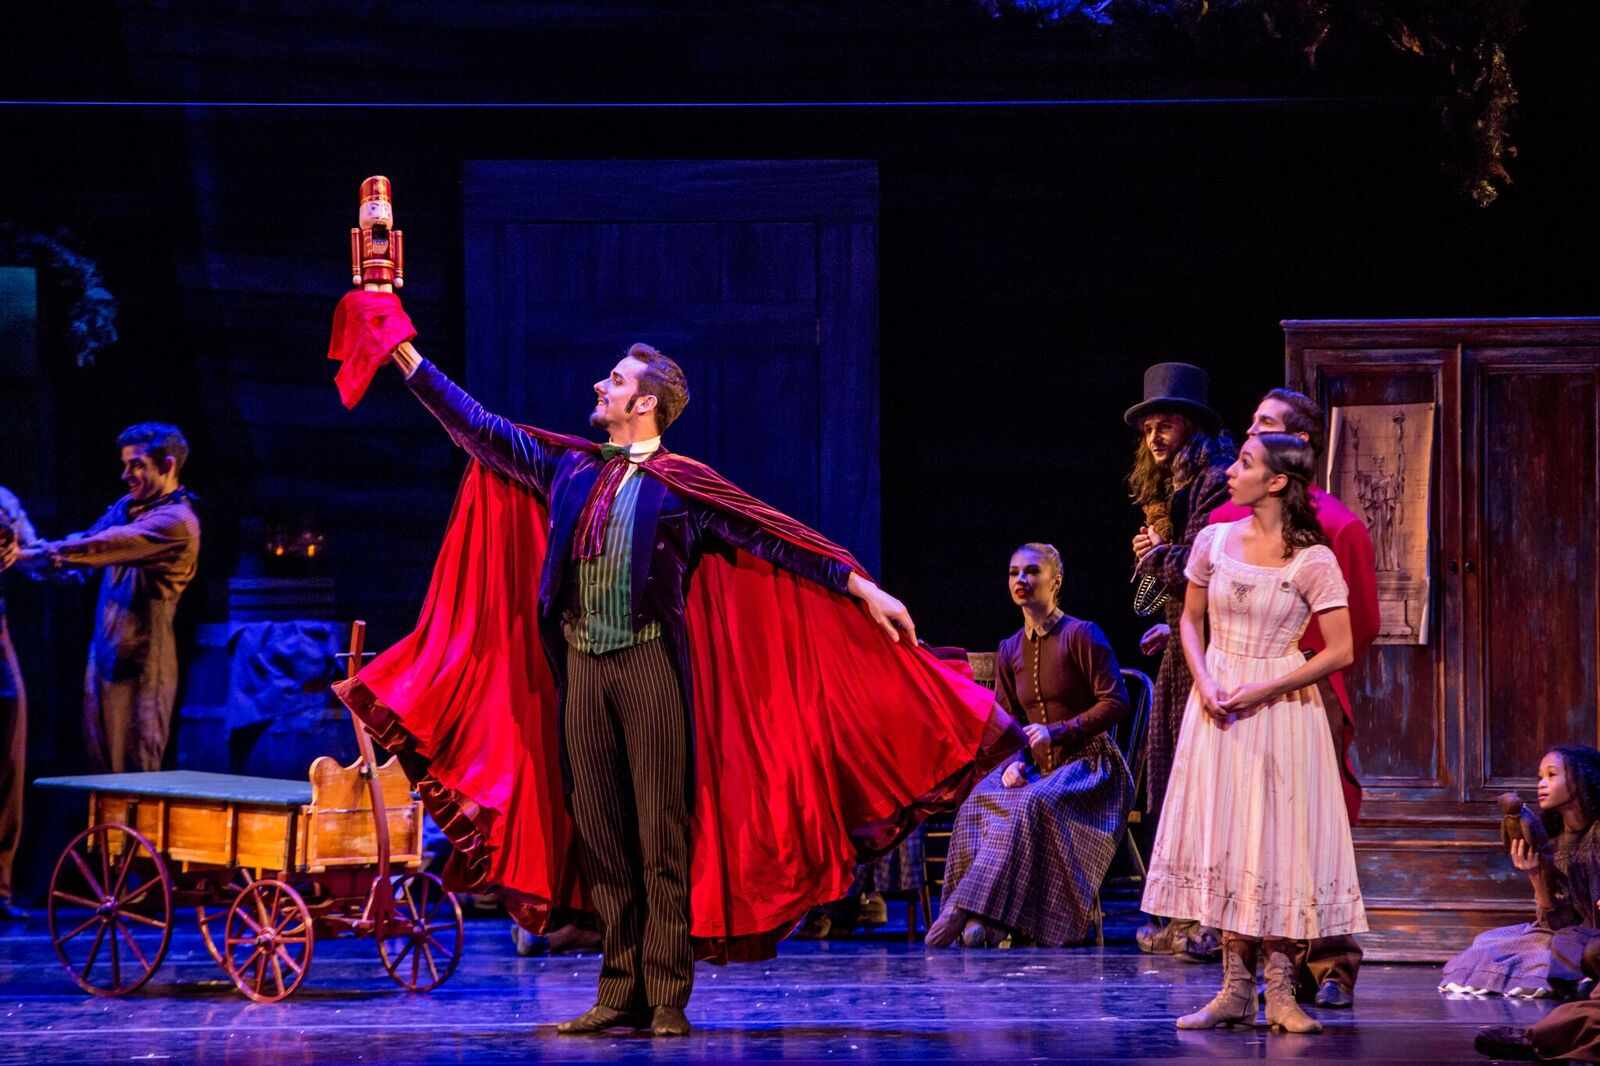 Discover What Makes Tchaikovsky's 'Nutcracker' Sound Like Sugar, Spice, and Everything Nice   WFMT